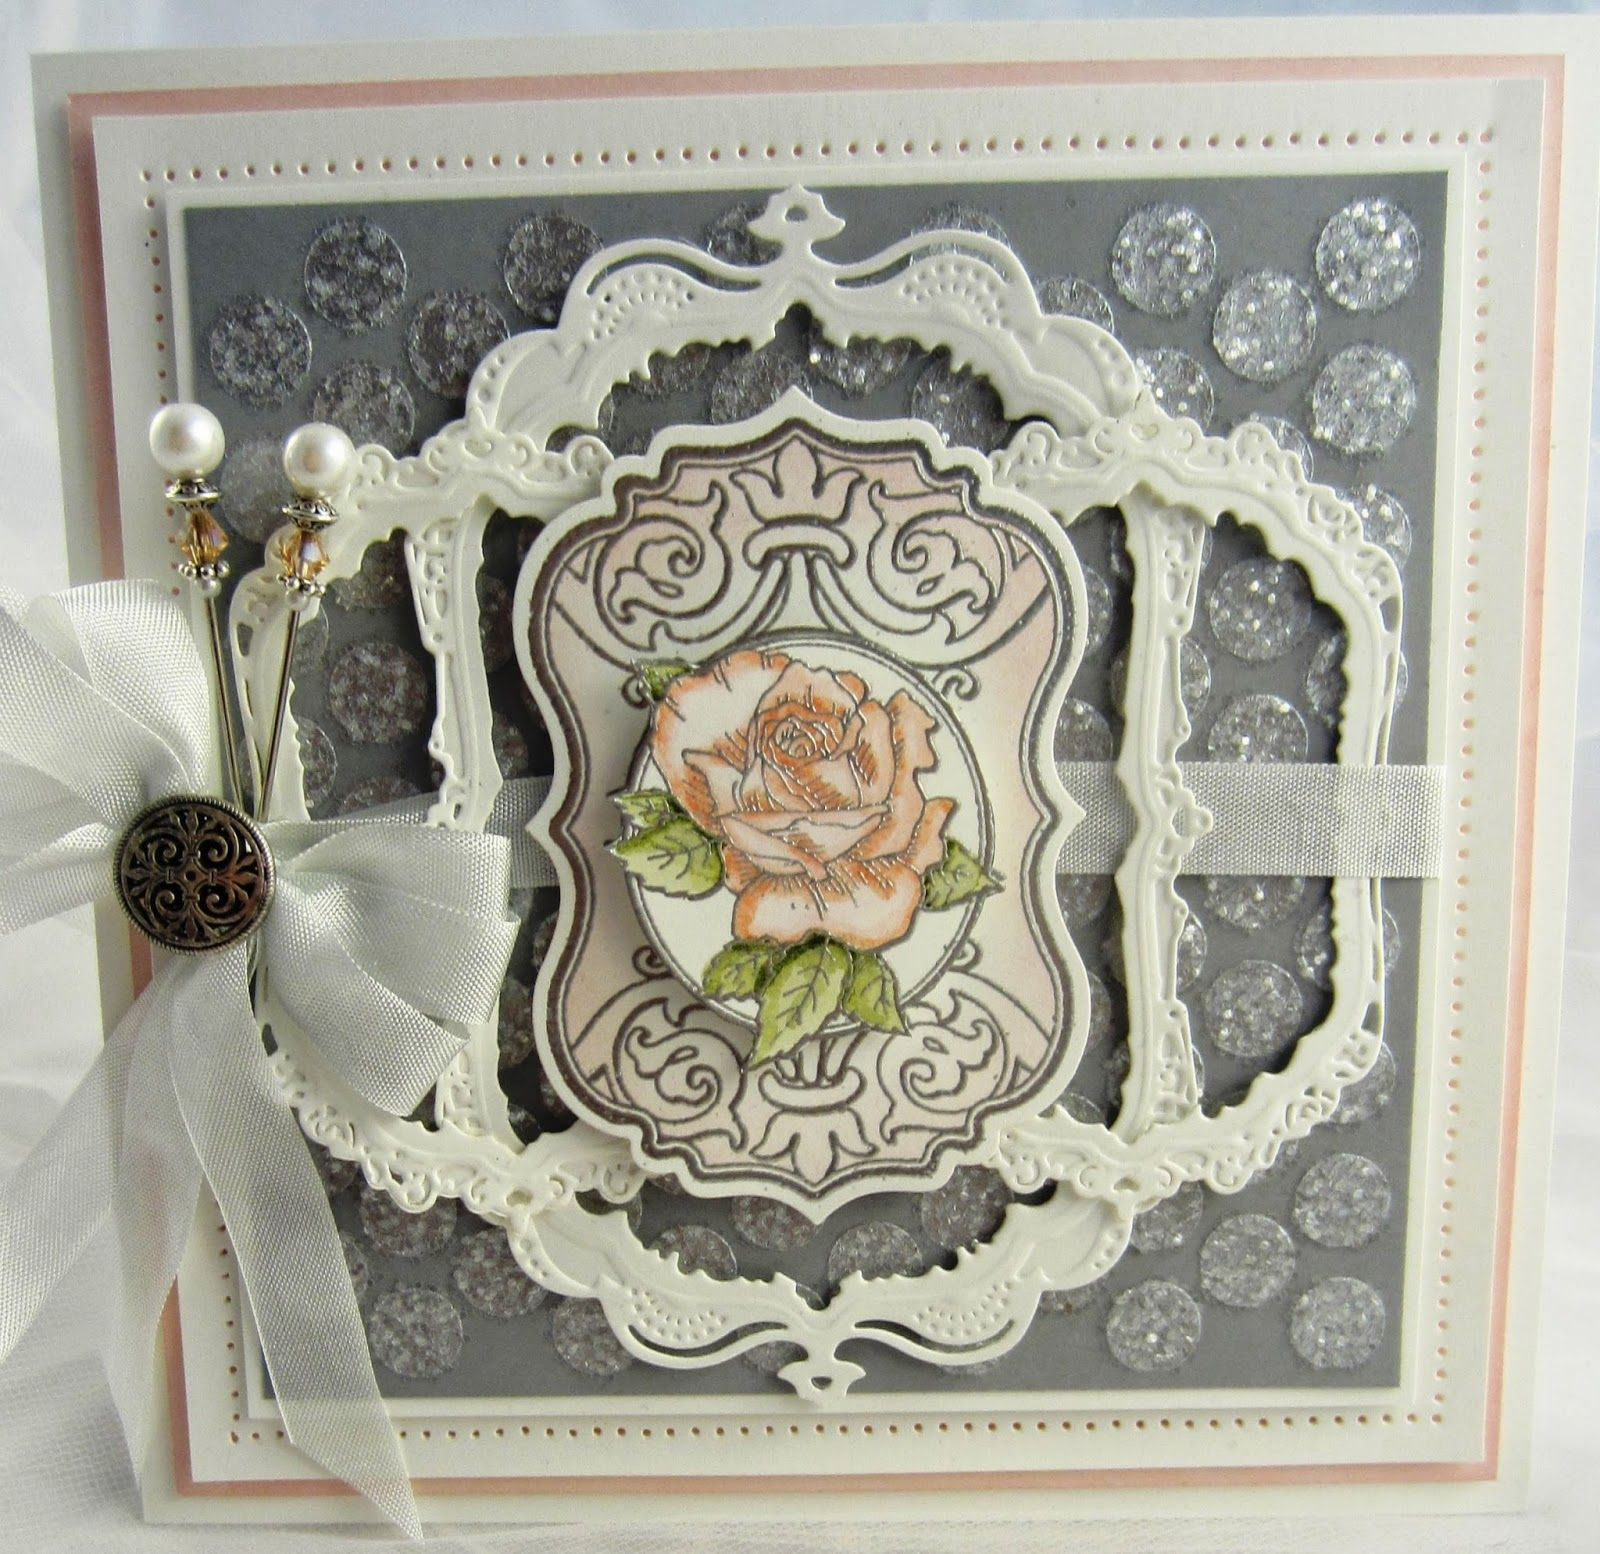 5/21/14 PartiCraft (Participate In Craft) blog artist:  Sue Wilson love the ivory-peach-grey color combination